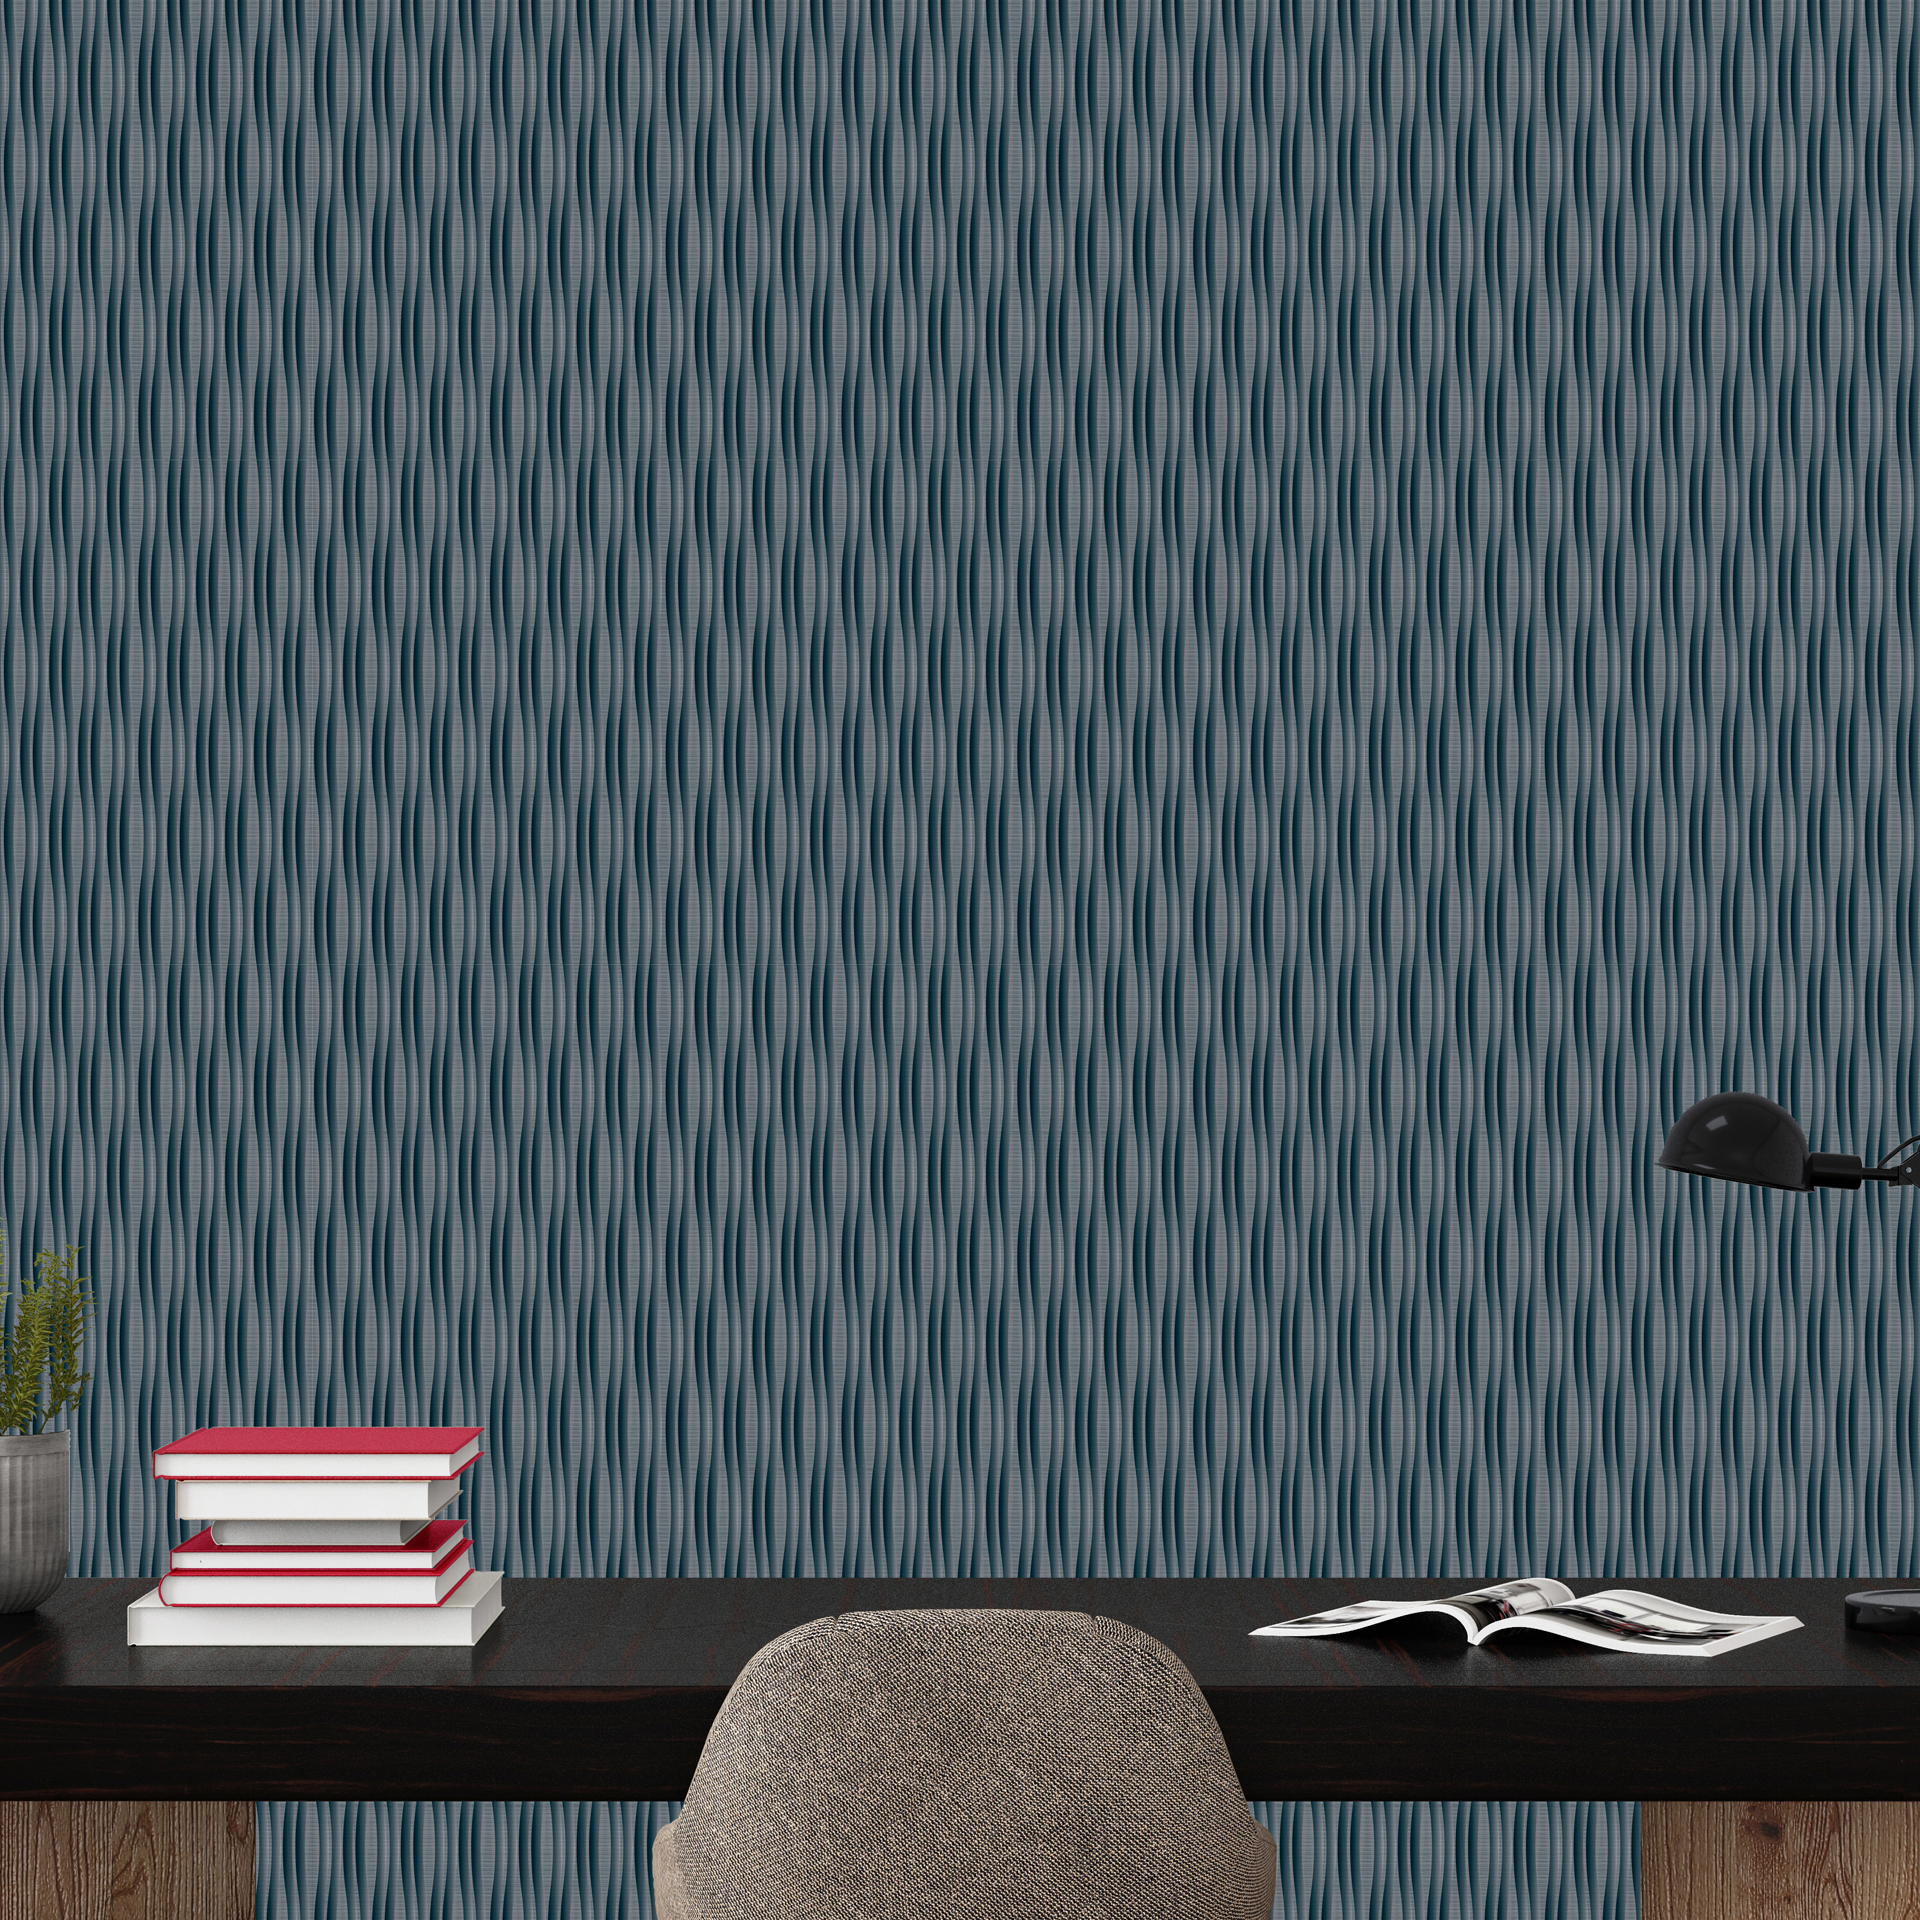 Laureate Custom Wallcovering by LeveyArt Digital